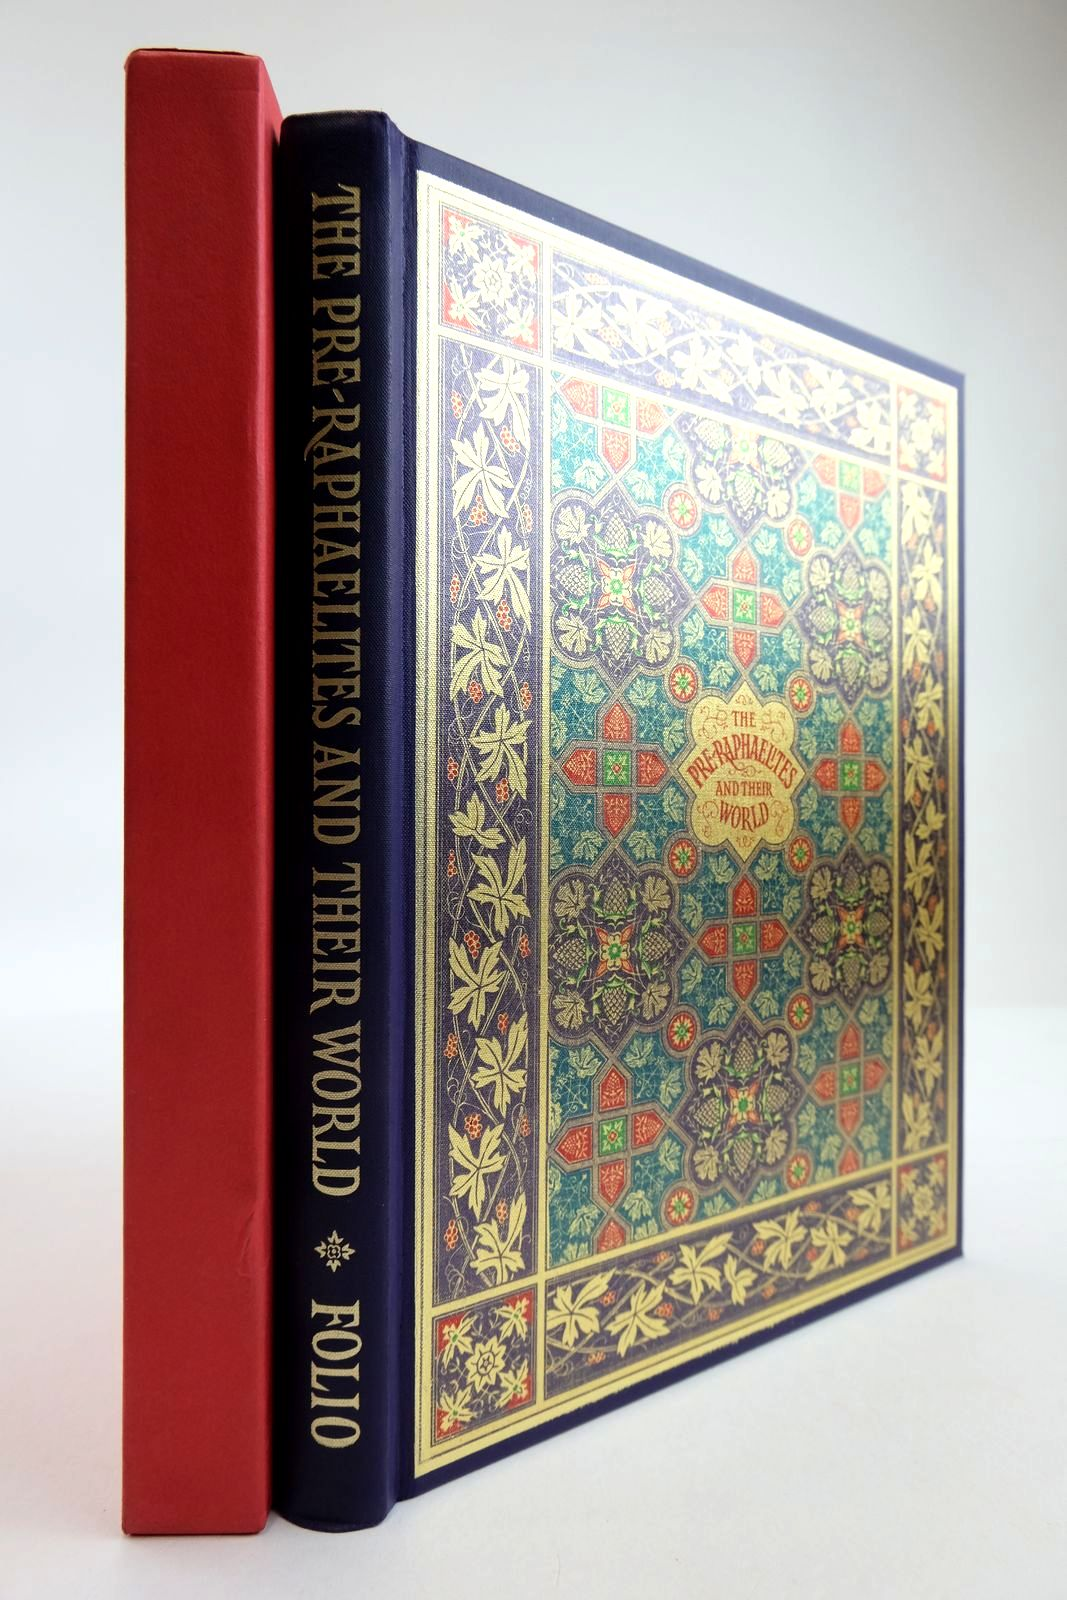 Photo of THE PRE-RAPHAELITES & THEIR WORLD written by Rossetti, William Michael Thirlwell, Angela published by Folio Society (STOCK CODE: 2134247)  for sale by Stella & Rose's Books